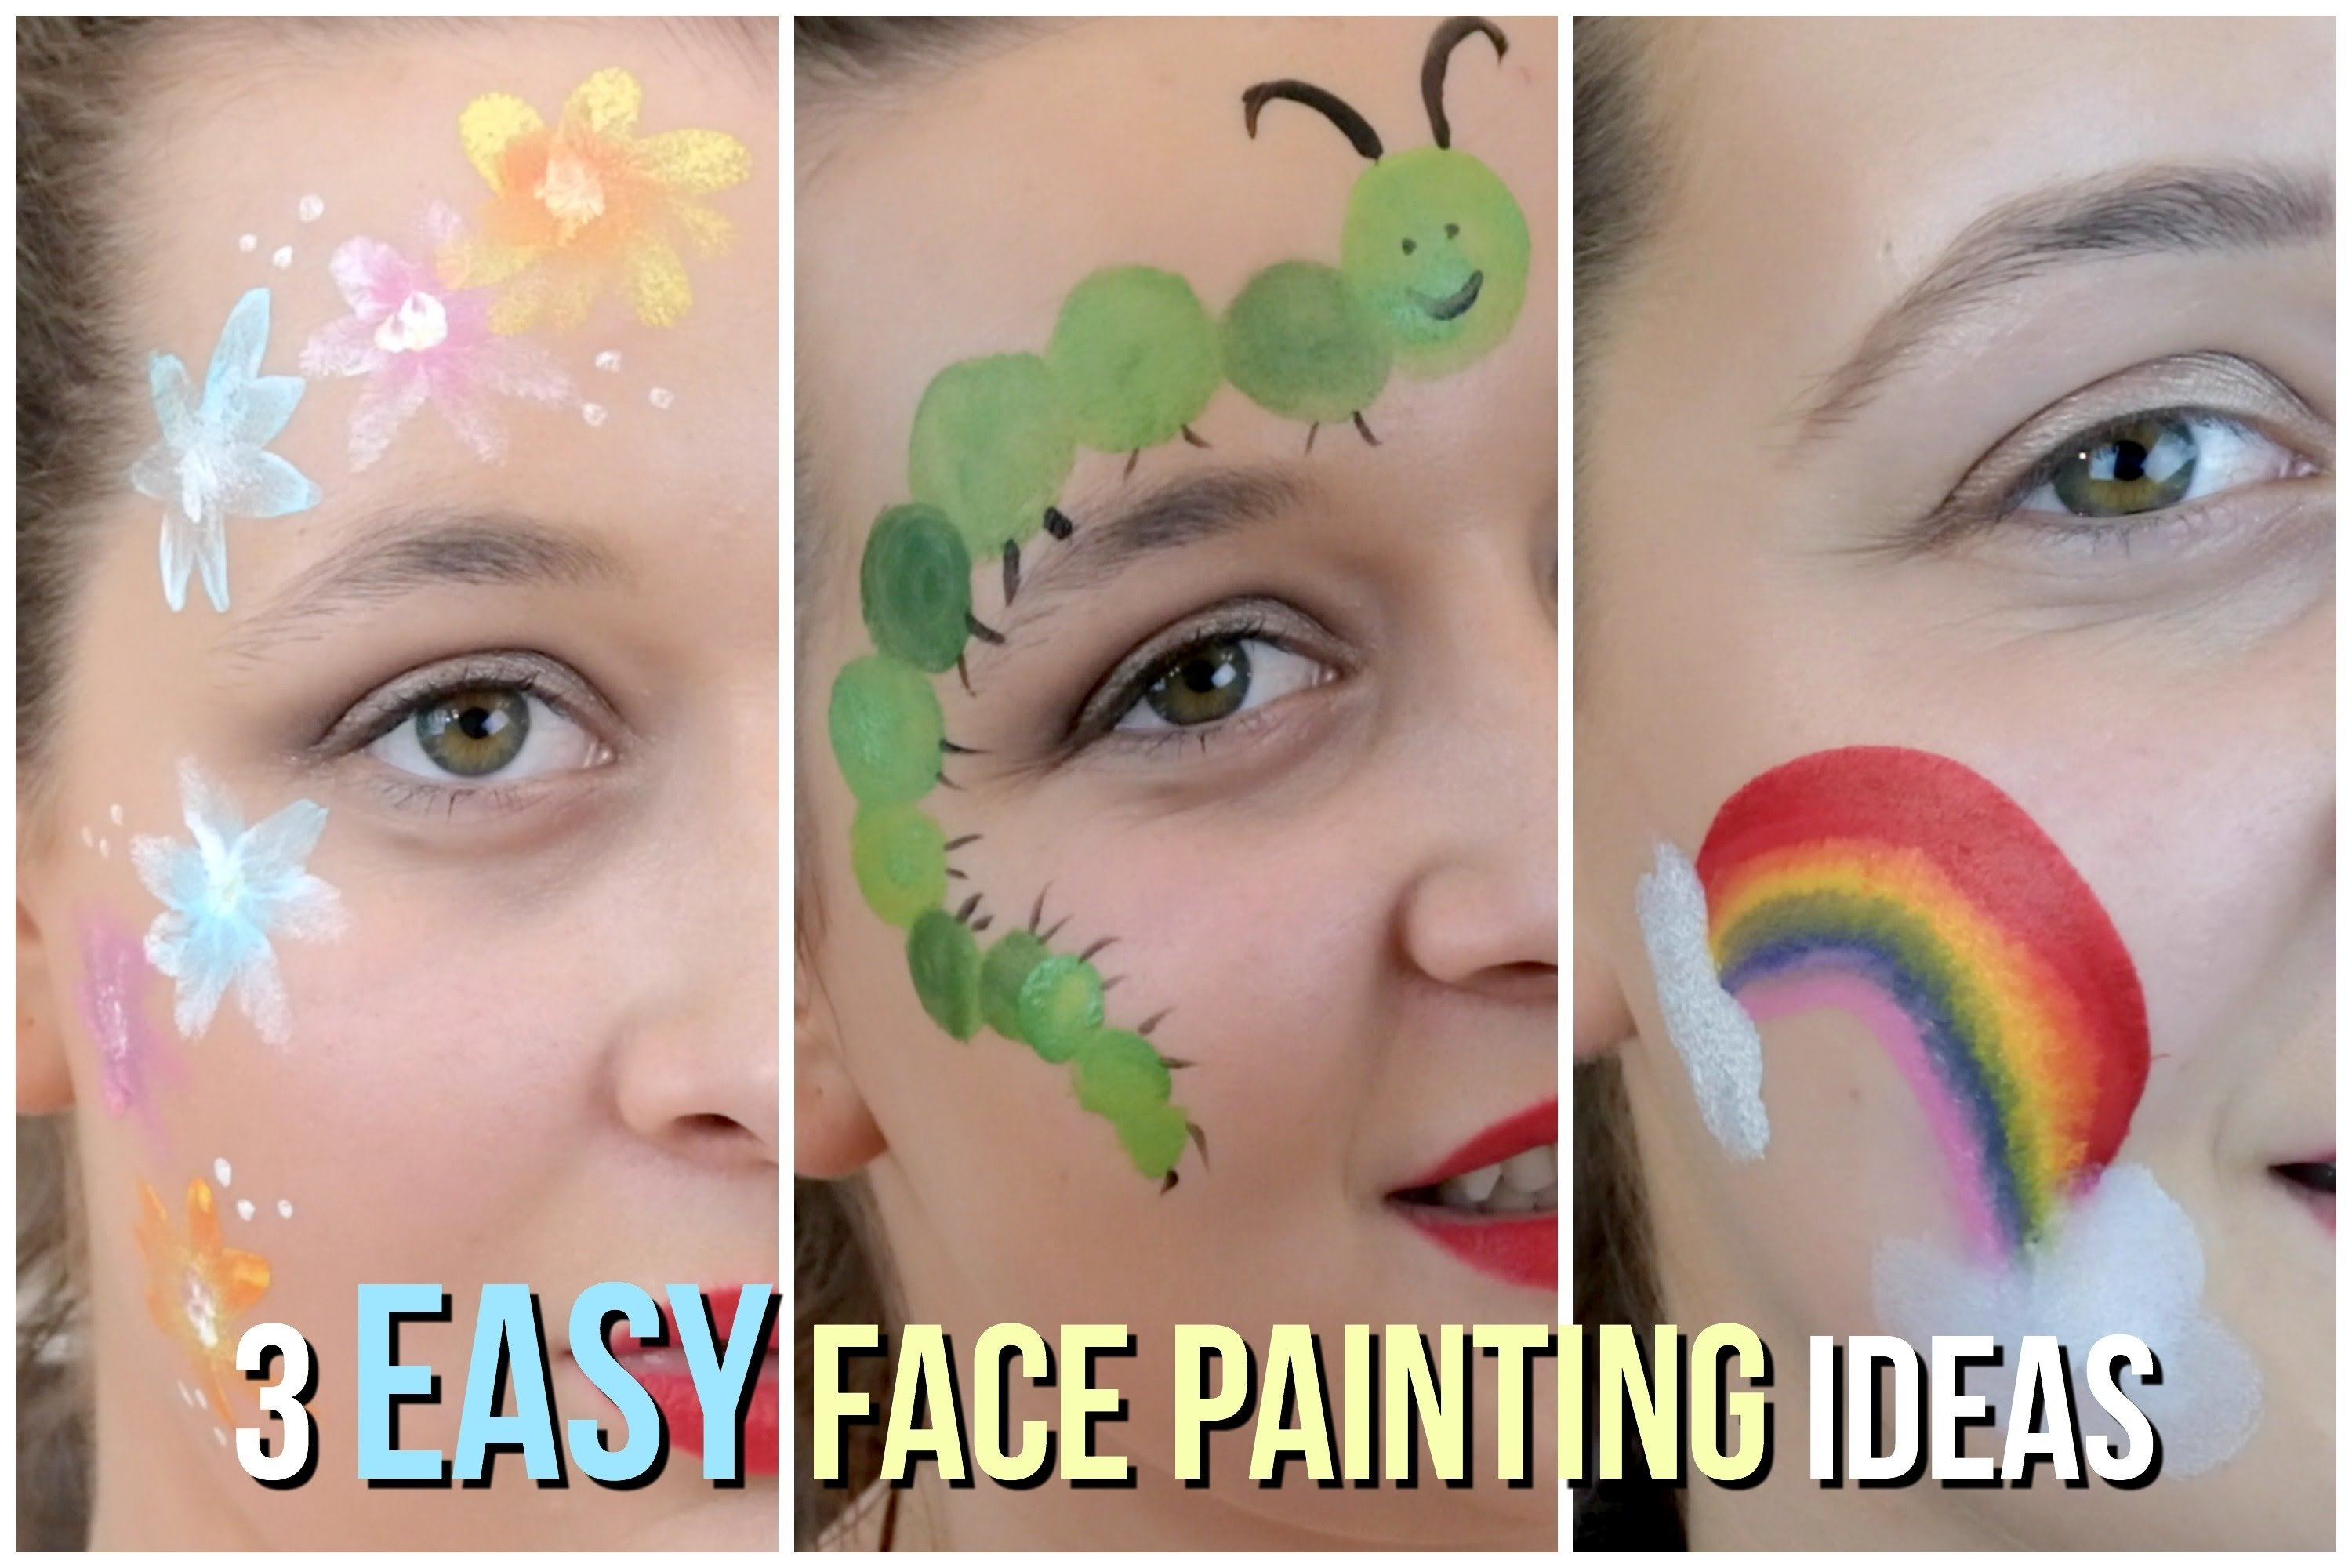 10 Stylish Face Painting Ideas For Kids Cheeks 3 easy face painting ideas that your kids will love youtube 4 2020